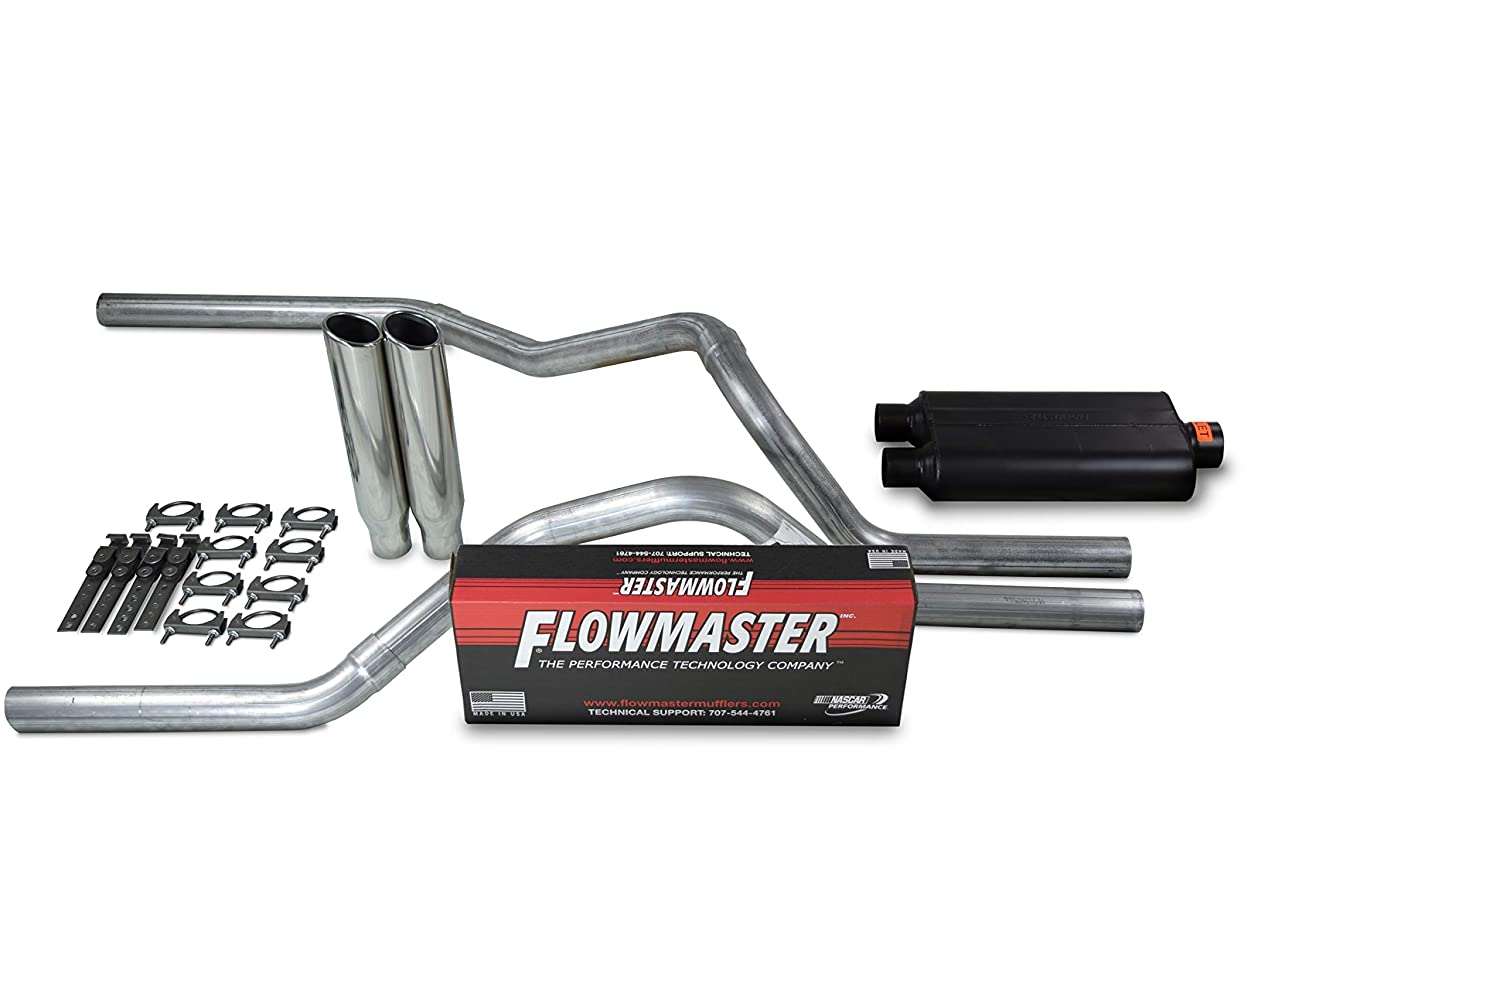 Truck Exhaust Kits Shop Line dual exhaust system 2.5 AL pipe Flowmaster 50 2.5 Polished Rolled Edge Clamp on Tip